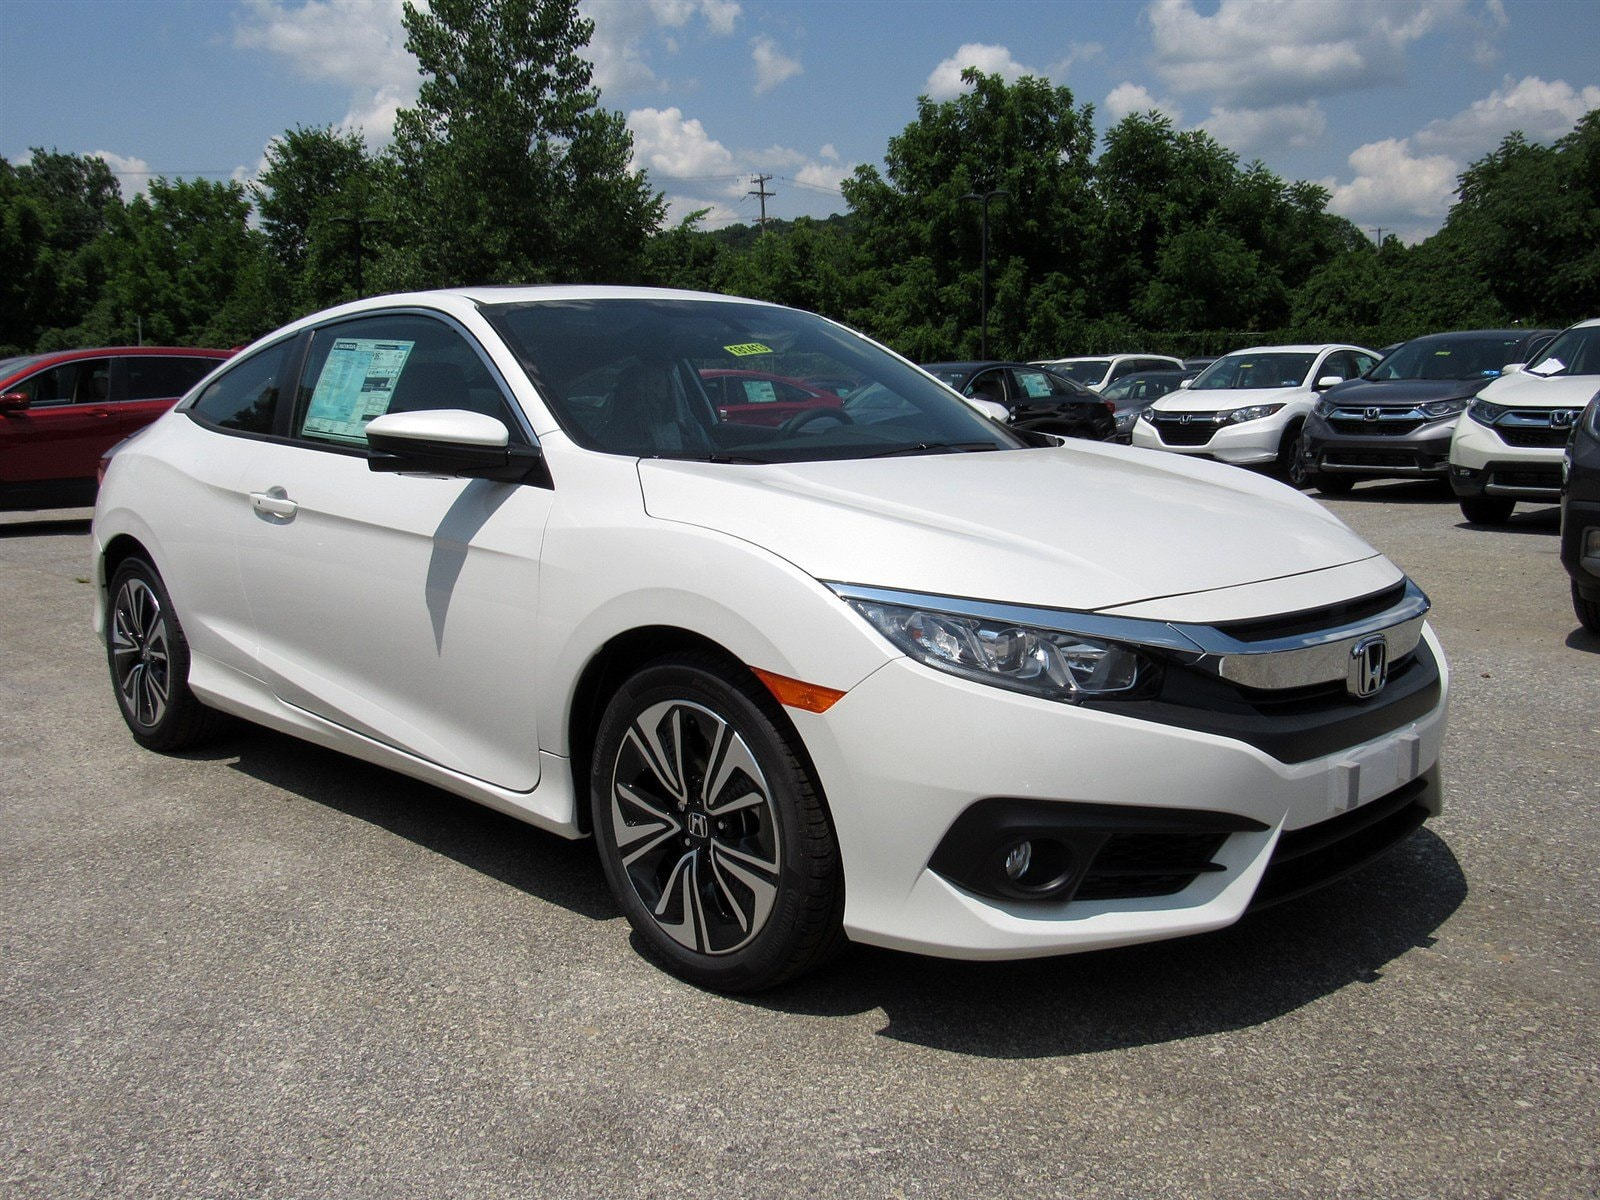 2018 Honda Civic EX-T Manual 2dr Car